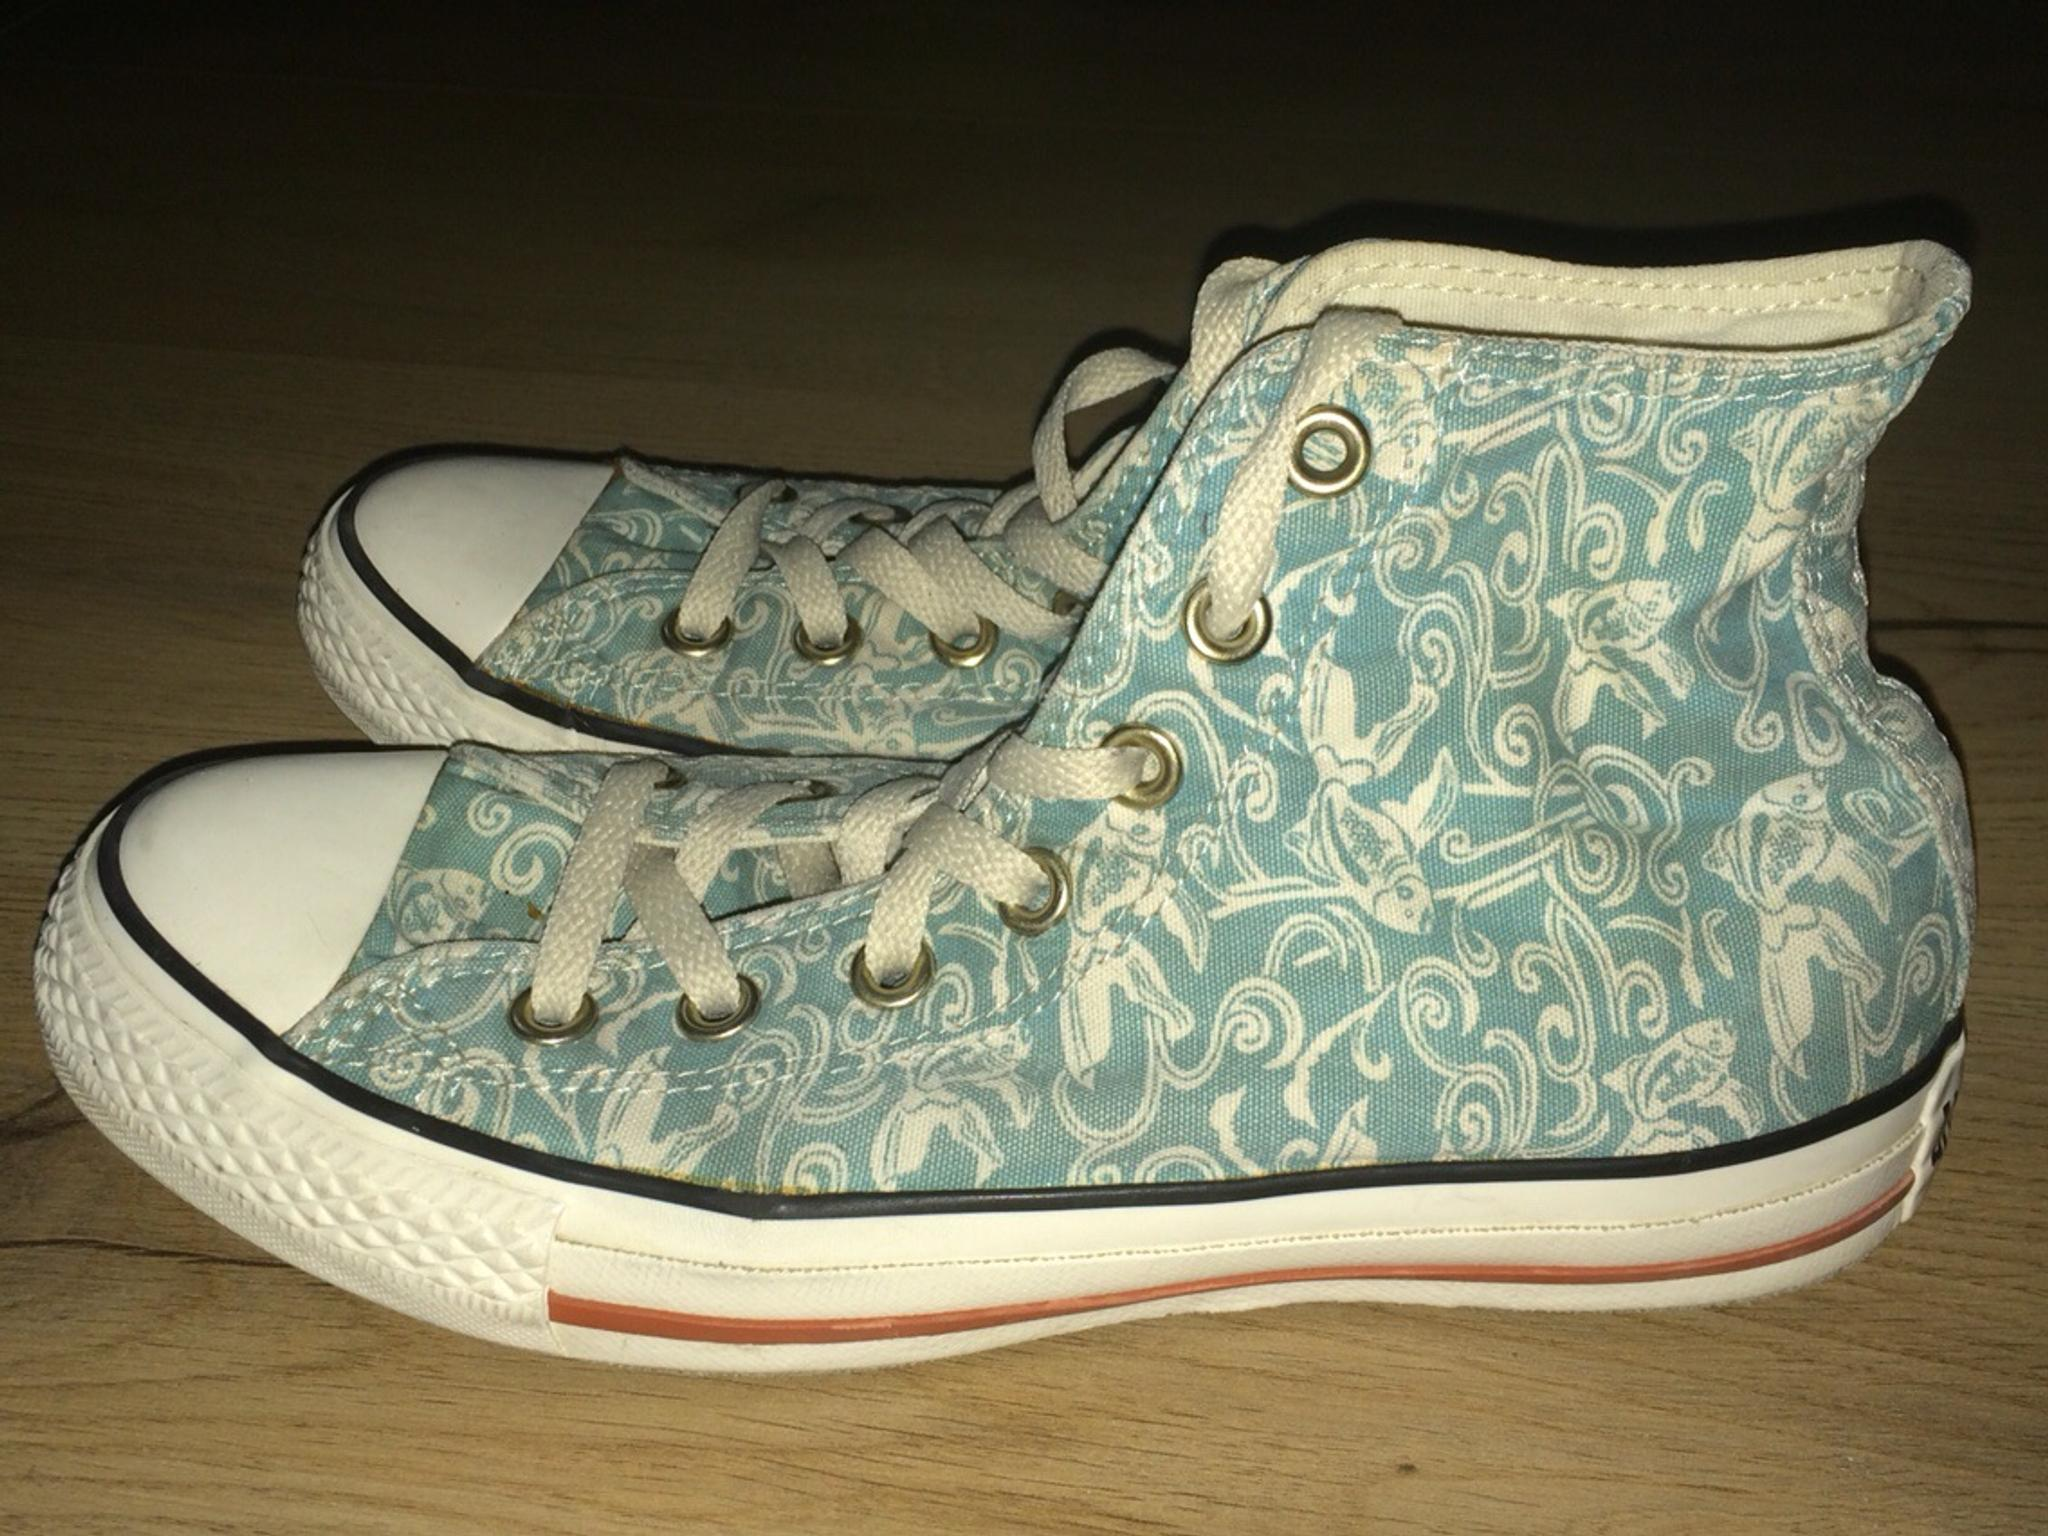 Hellblaue Chucks mit Koi Muster in Gr. 37,5